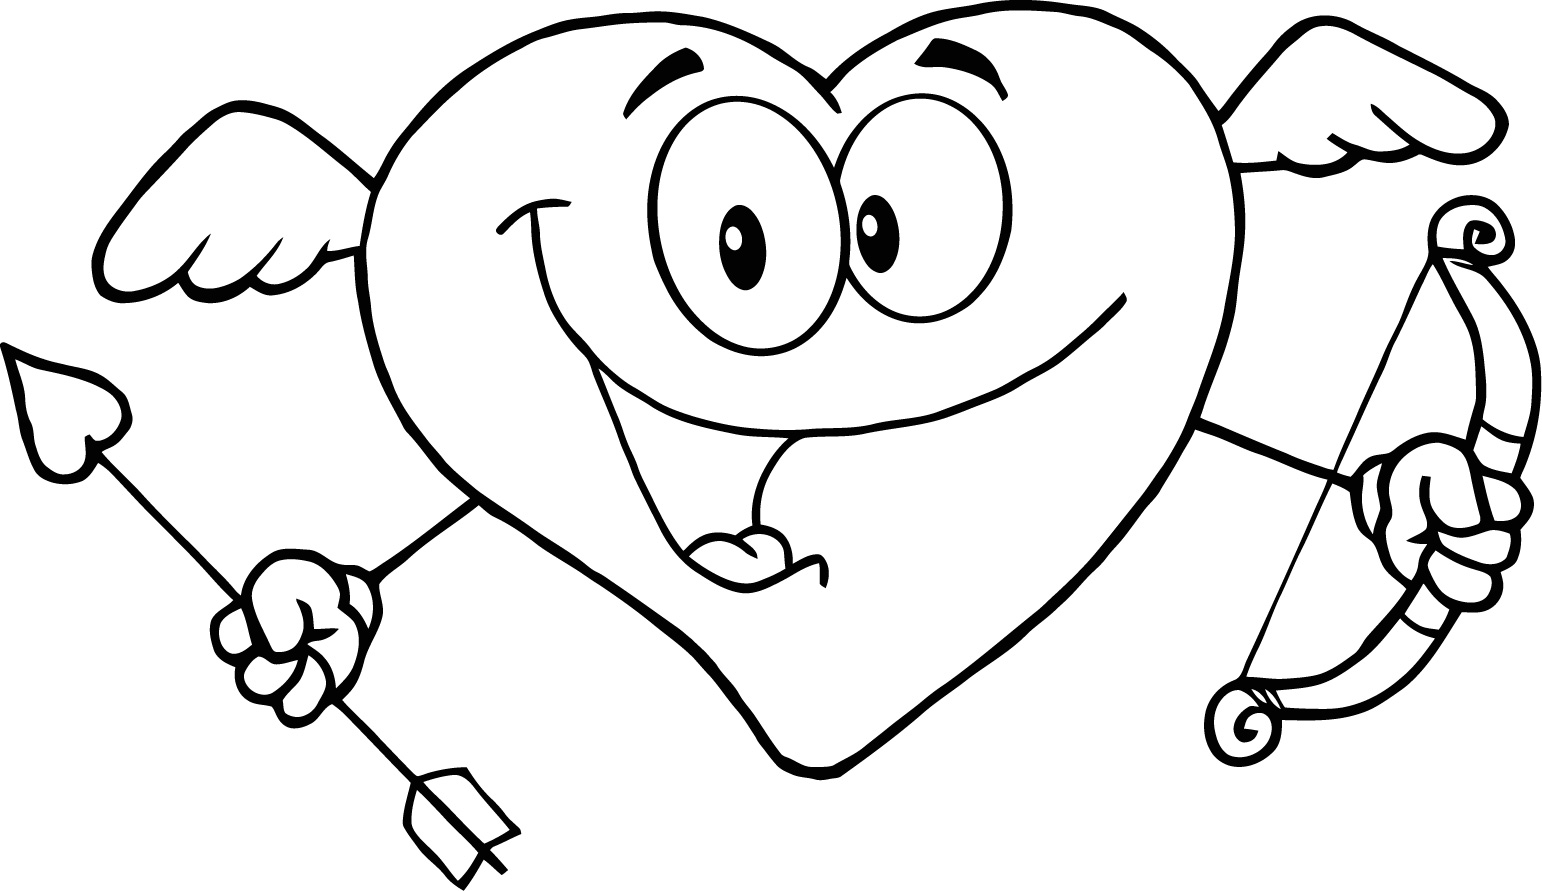 1542x891 Free Printable Smiley Face Coloring Pages For Kids